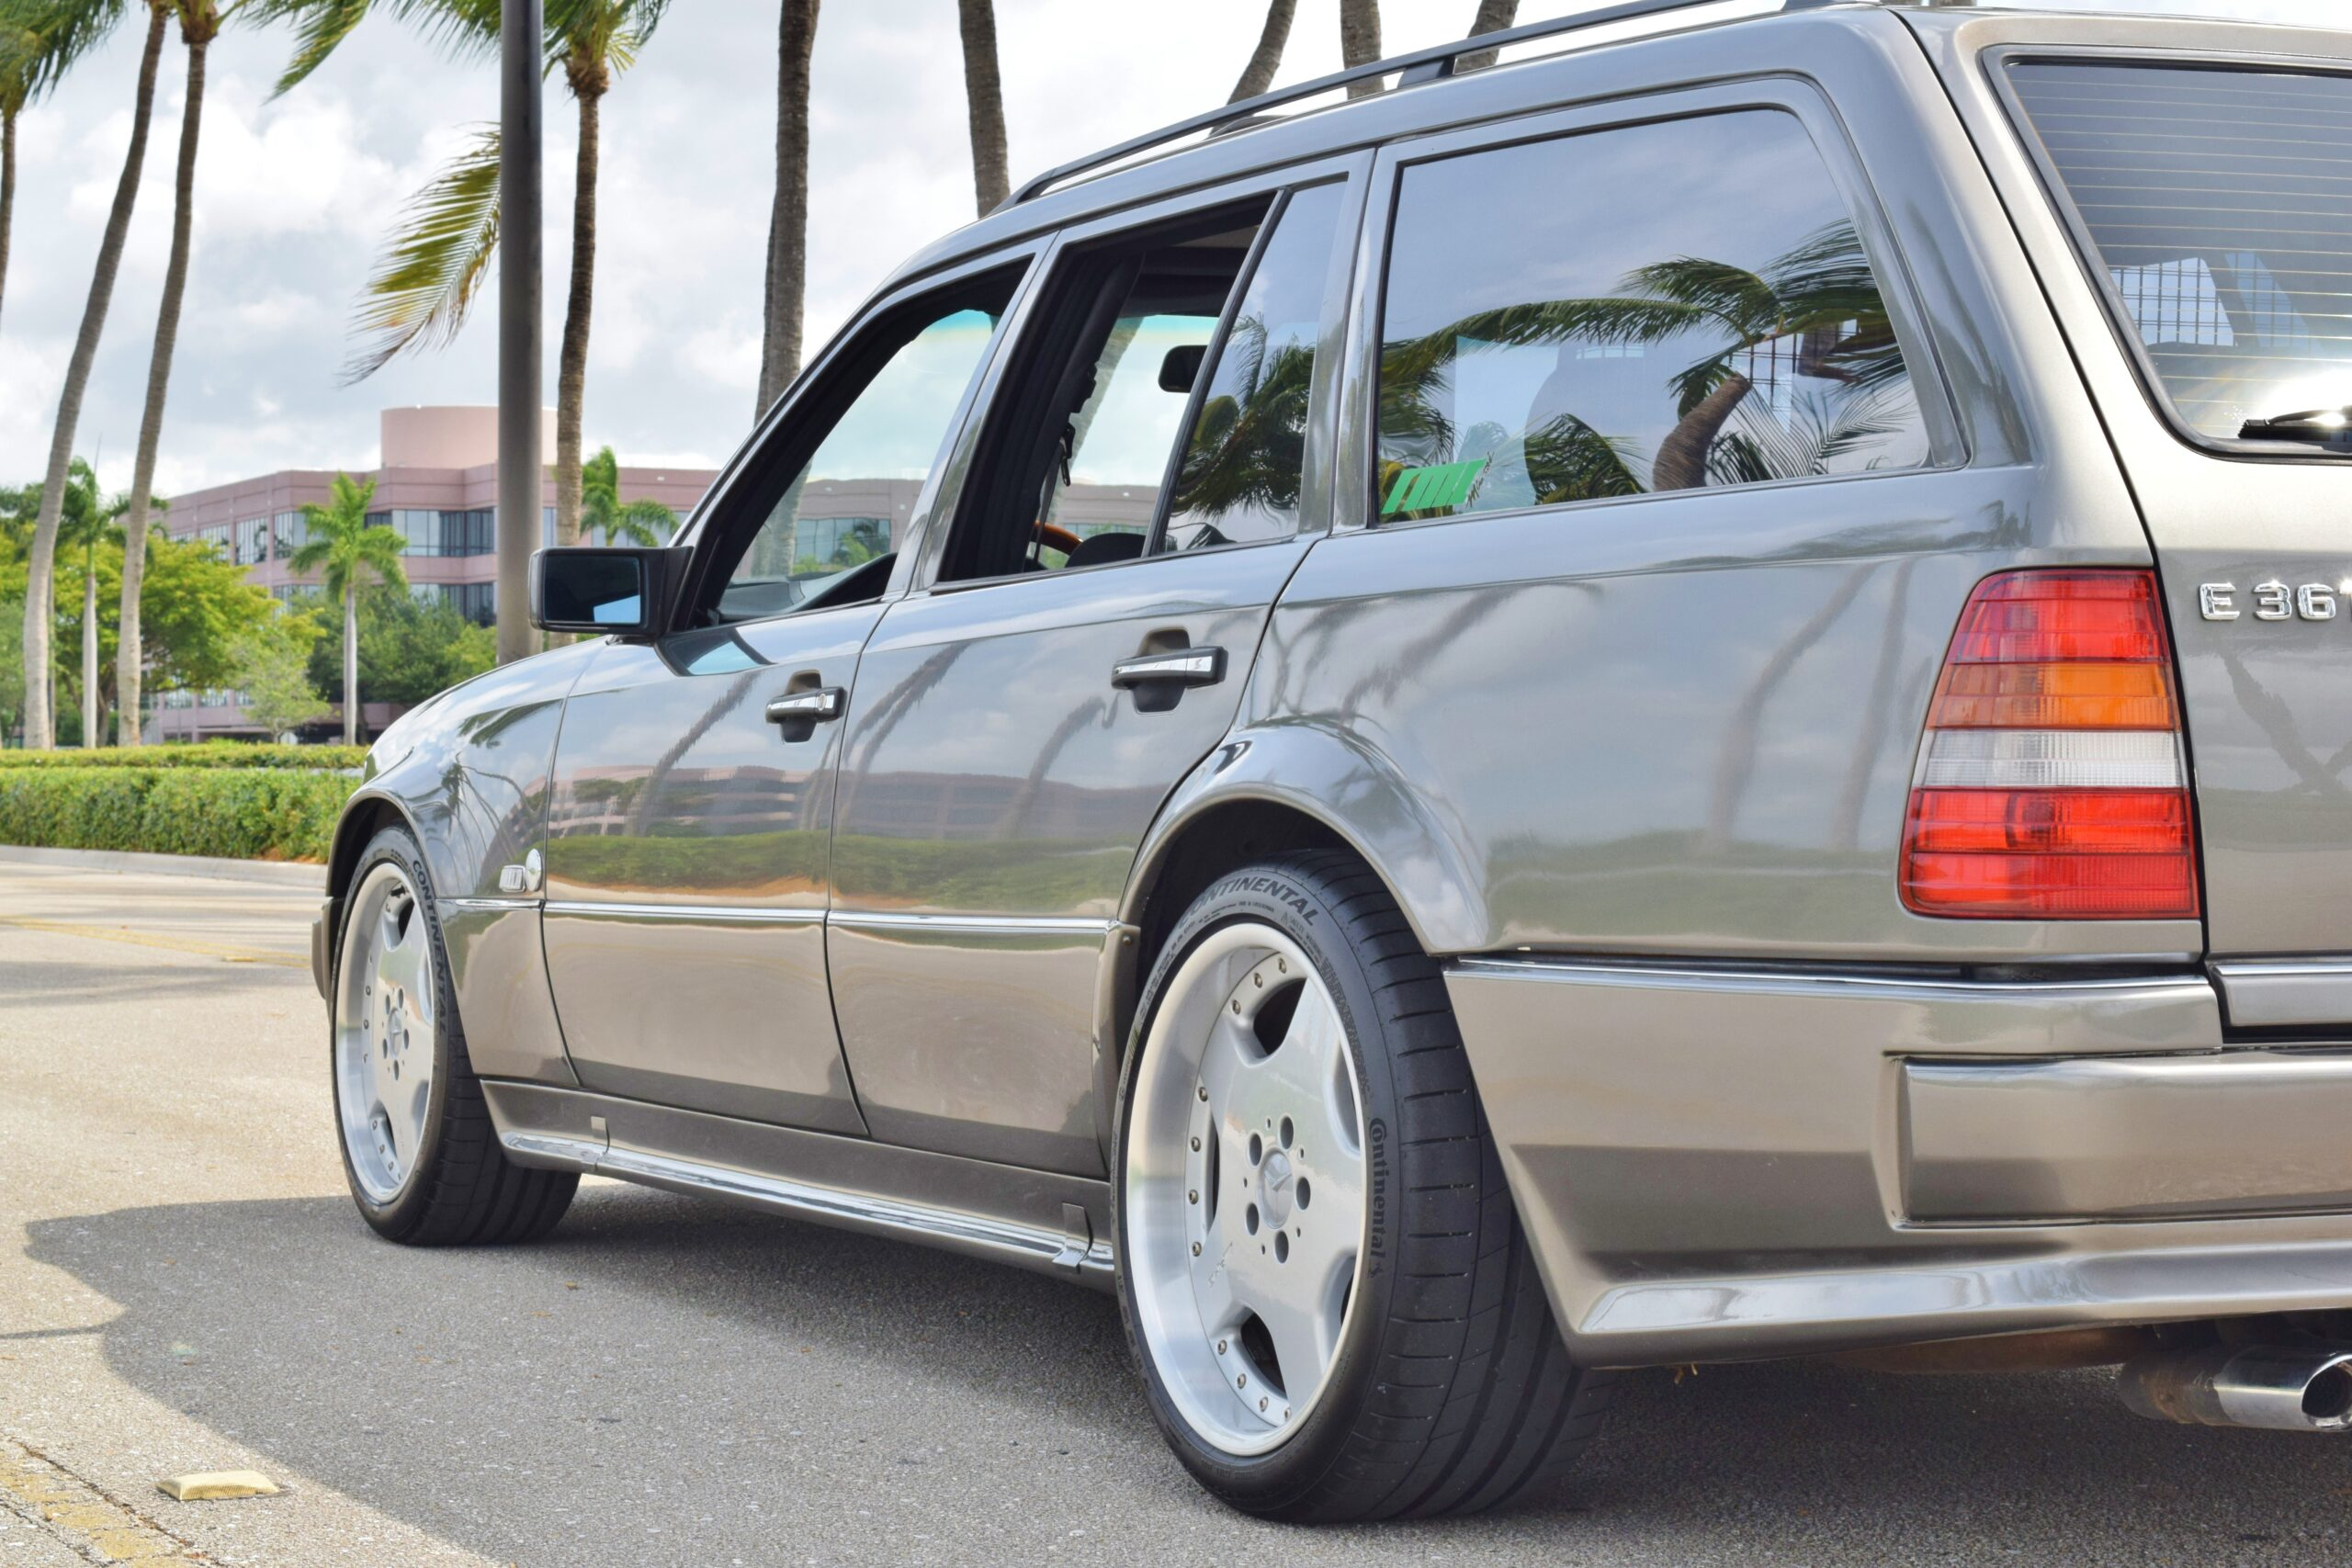 1994 Mercedes-Benz S-124 AMG WIDEBODY WAGON AMG Japan EURO 300TE/E36T -Euro Checkered Cloth-AMG Monoblocks-Service History